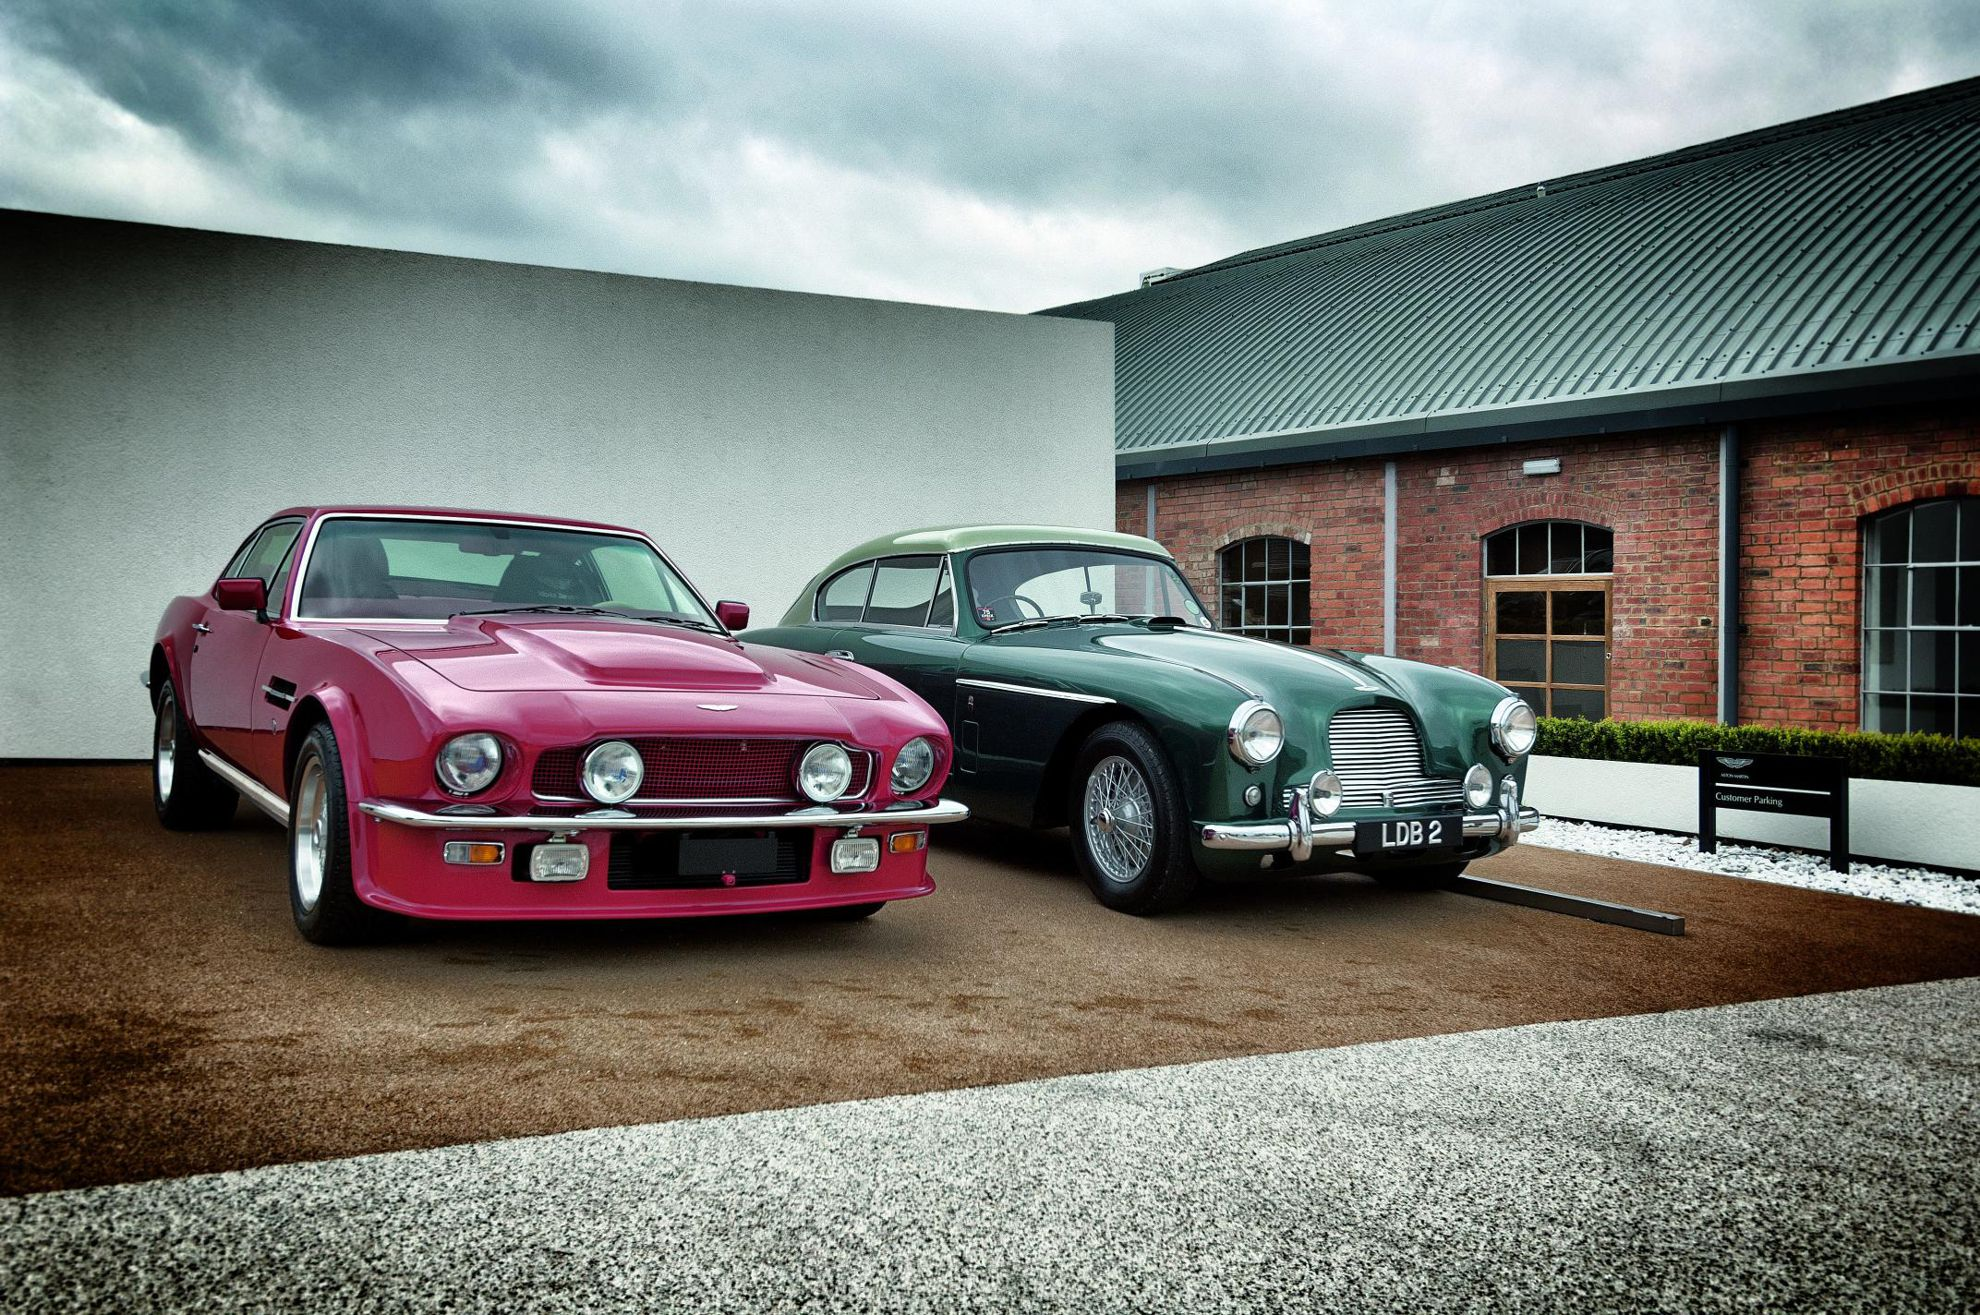 Heritage Volkswagen Subaru >> Aston Martin launches Assured Provenance rating for classic cars